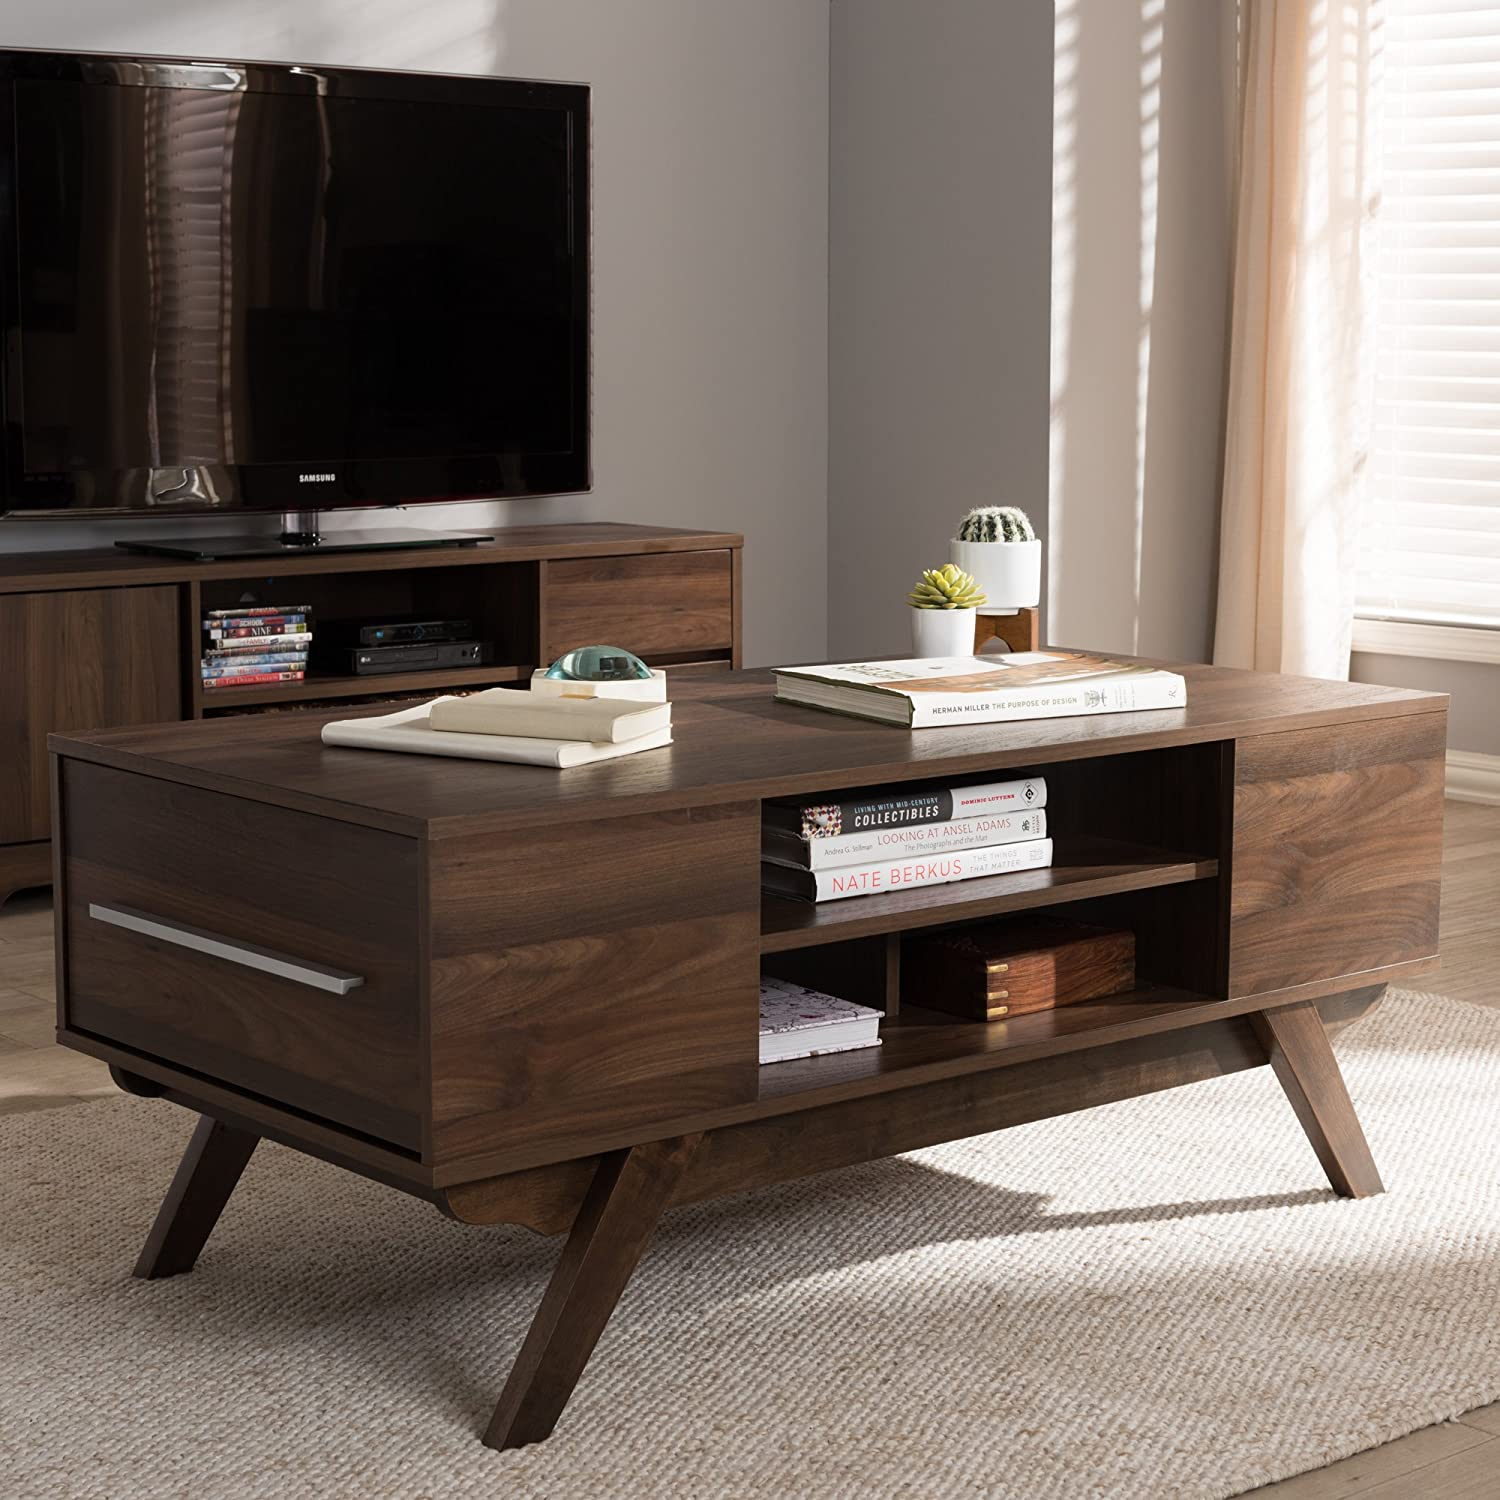 - Amazon.com: Baxton Studio 2-Drawer Coffee Table In Brown Finish